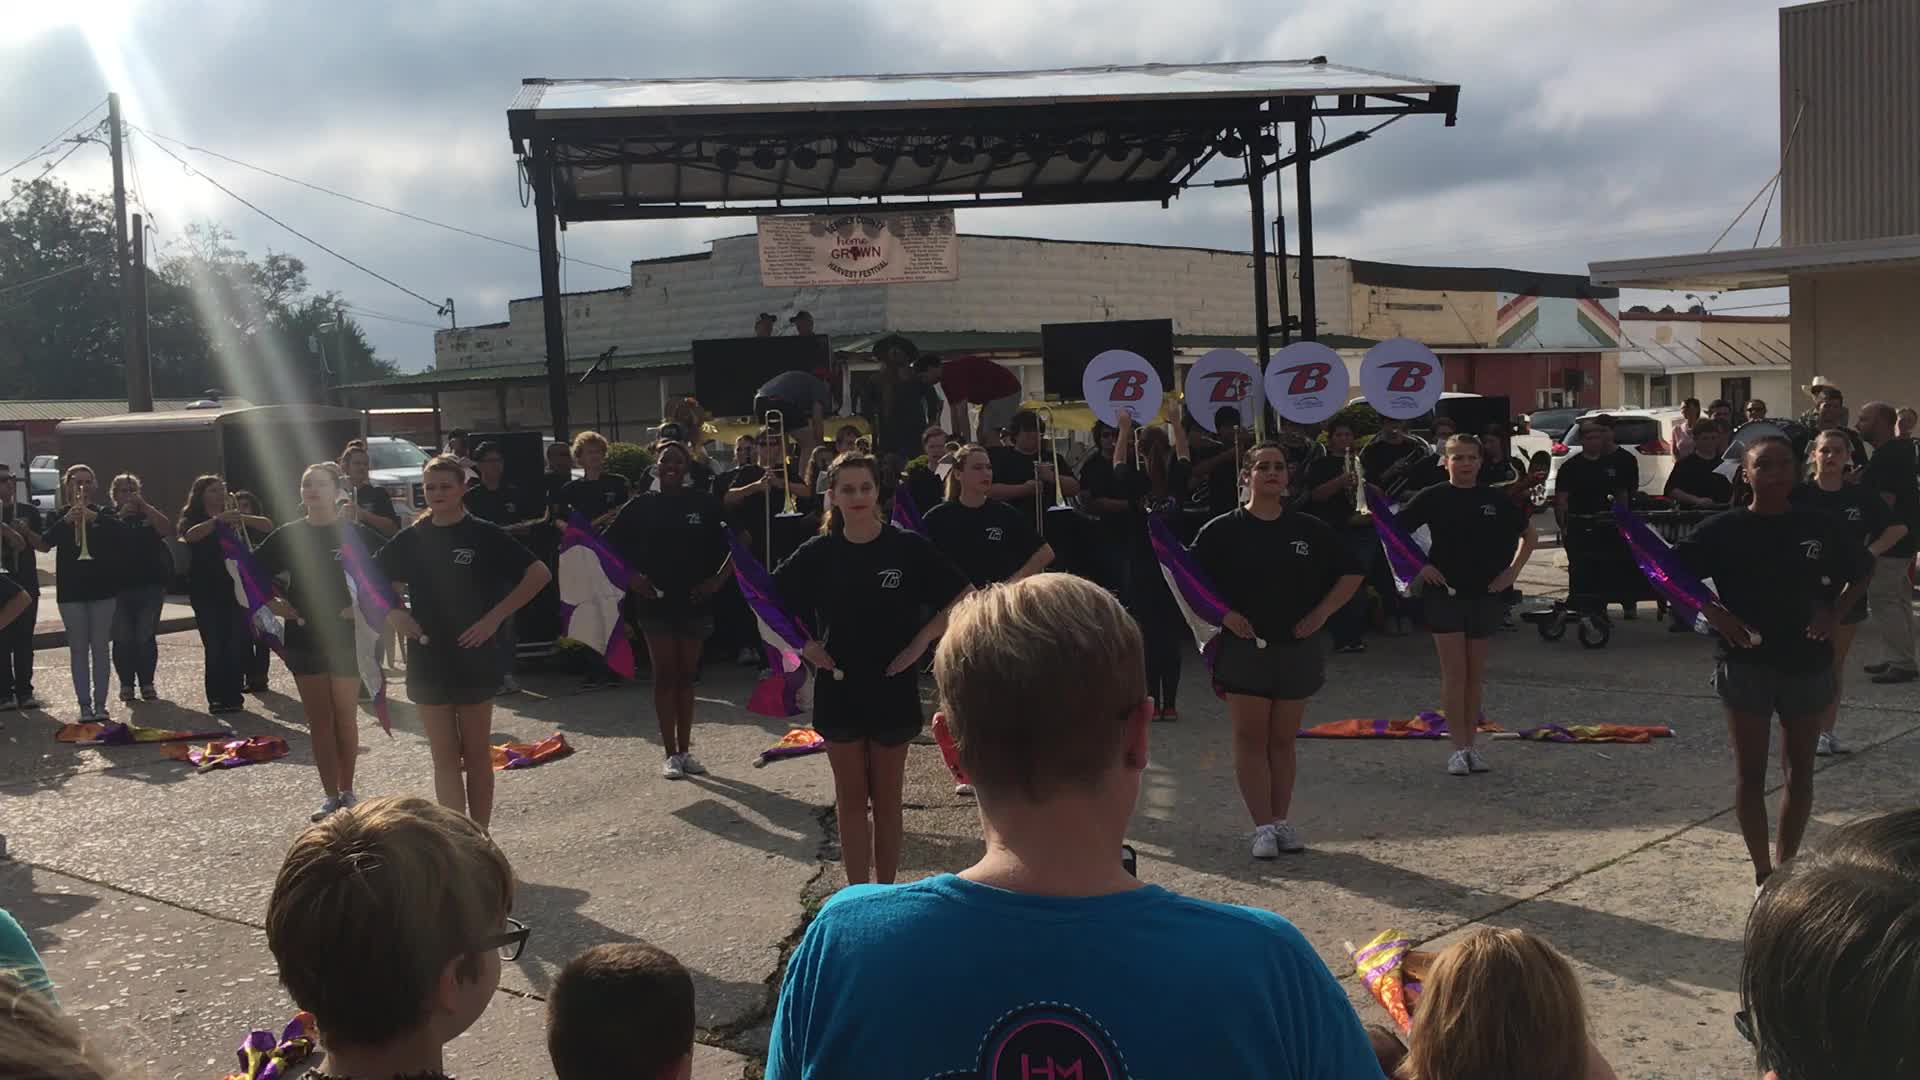 1920x1080 High School Band, Entertainment, in Pictures: WWALS at Berrien County Harvest Festival, by Gretchen Quarterman, for WWALS.net, 30 September 2017